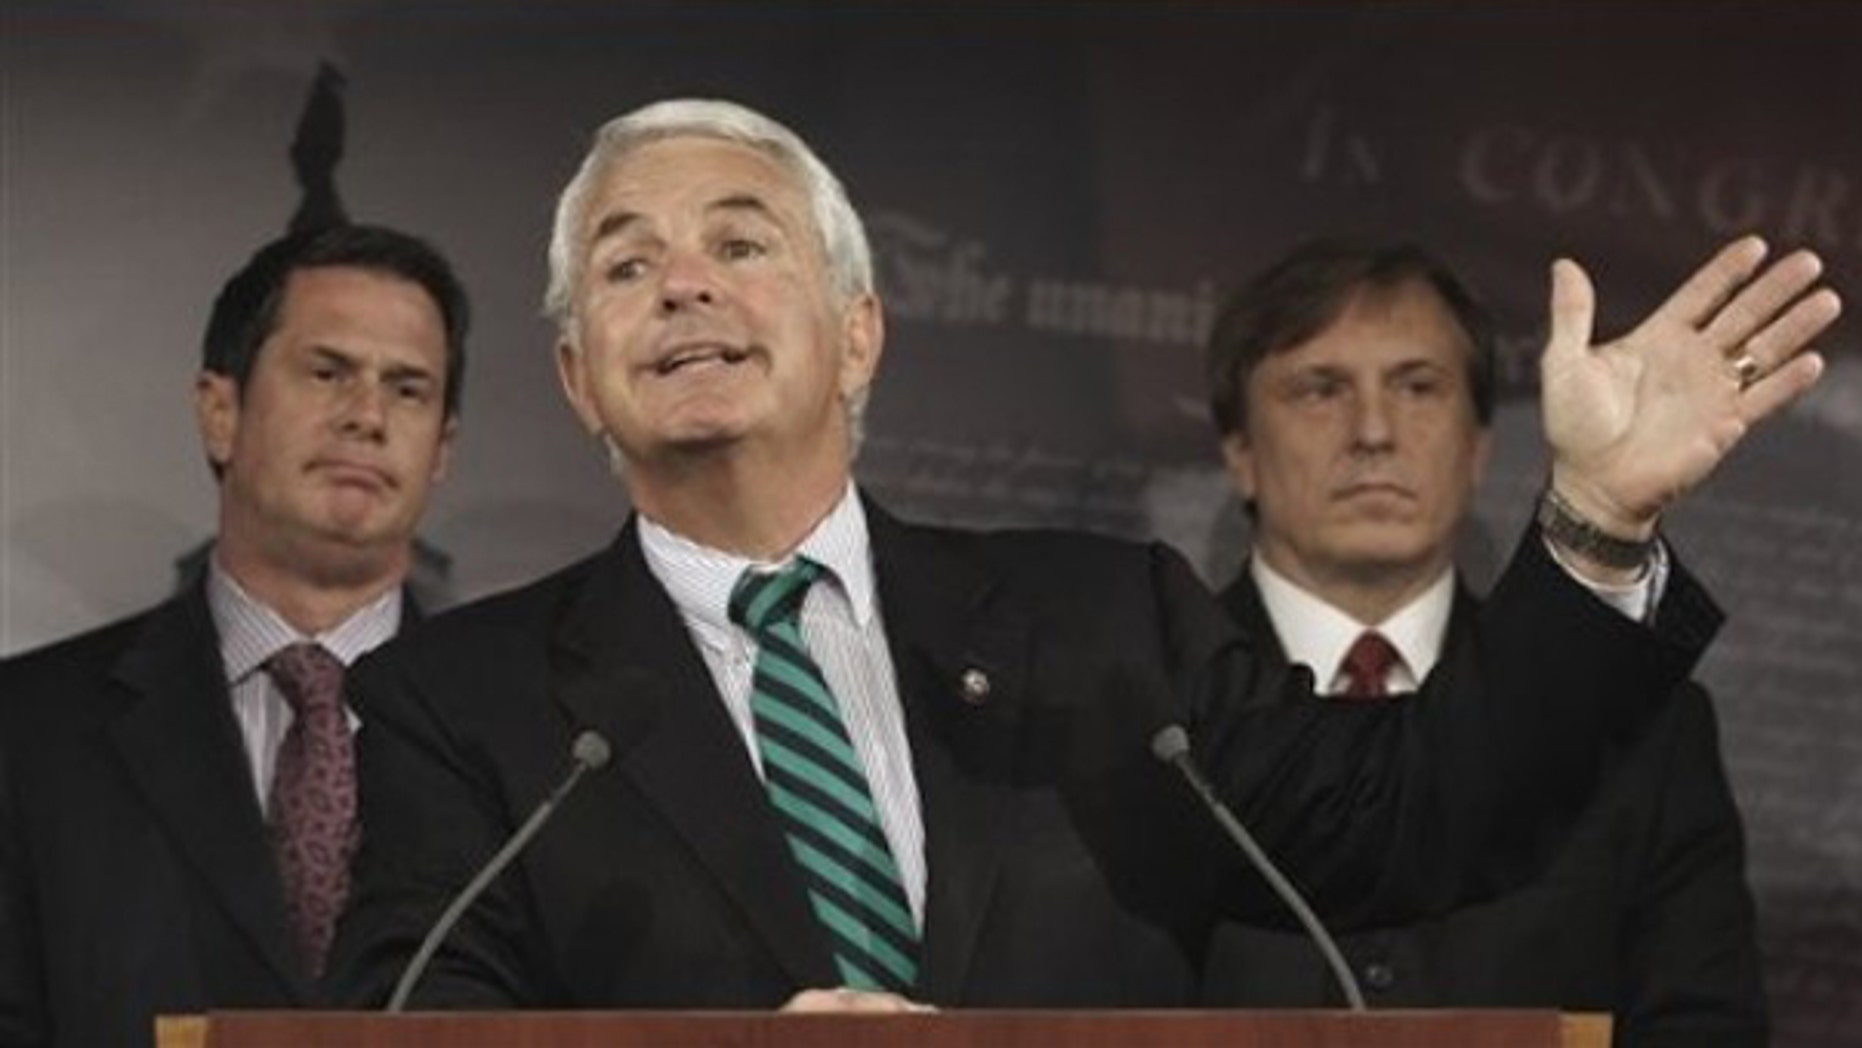 Rep. John Shadegg, R-Ariz. gestures during a news conference on Capitol Hill, Wednesday, March 11, 2009. (AP)